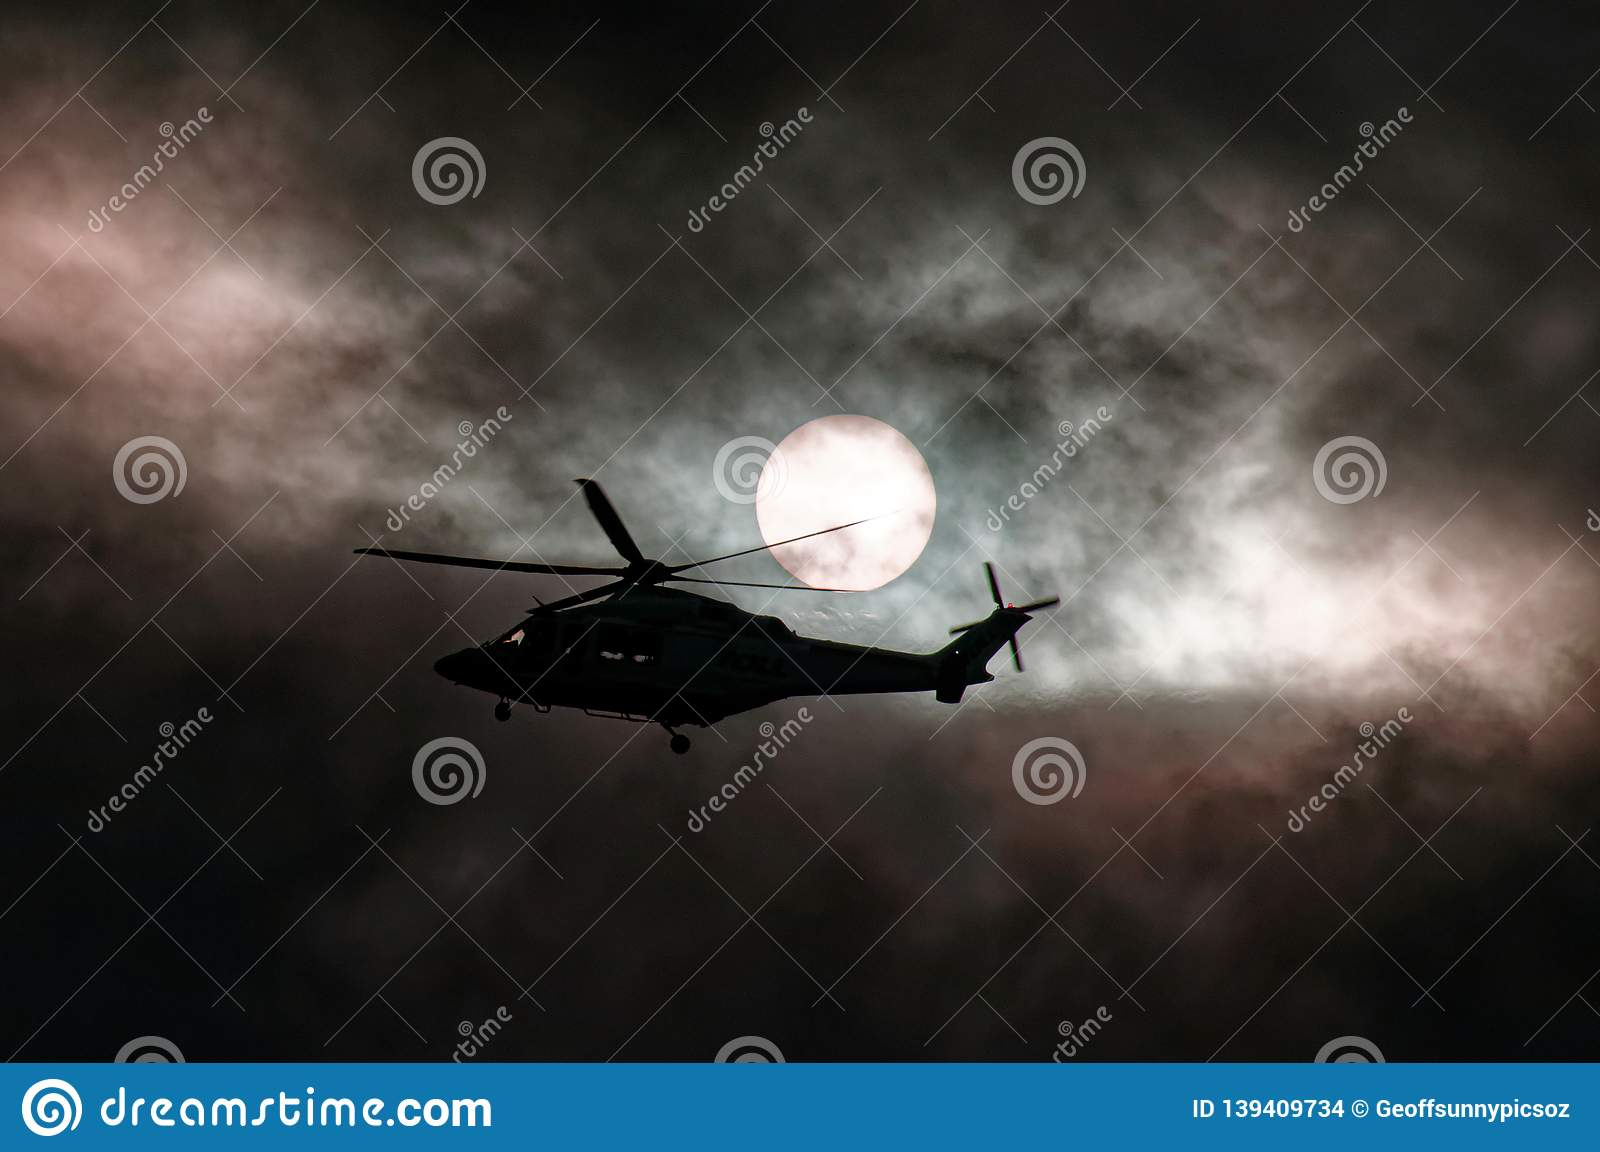 Airborne Helicopter in storm cloud sunset silhouette